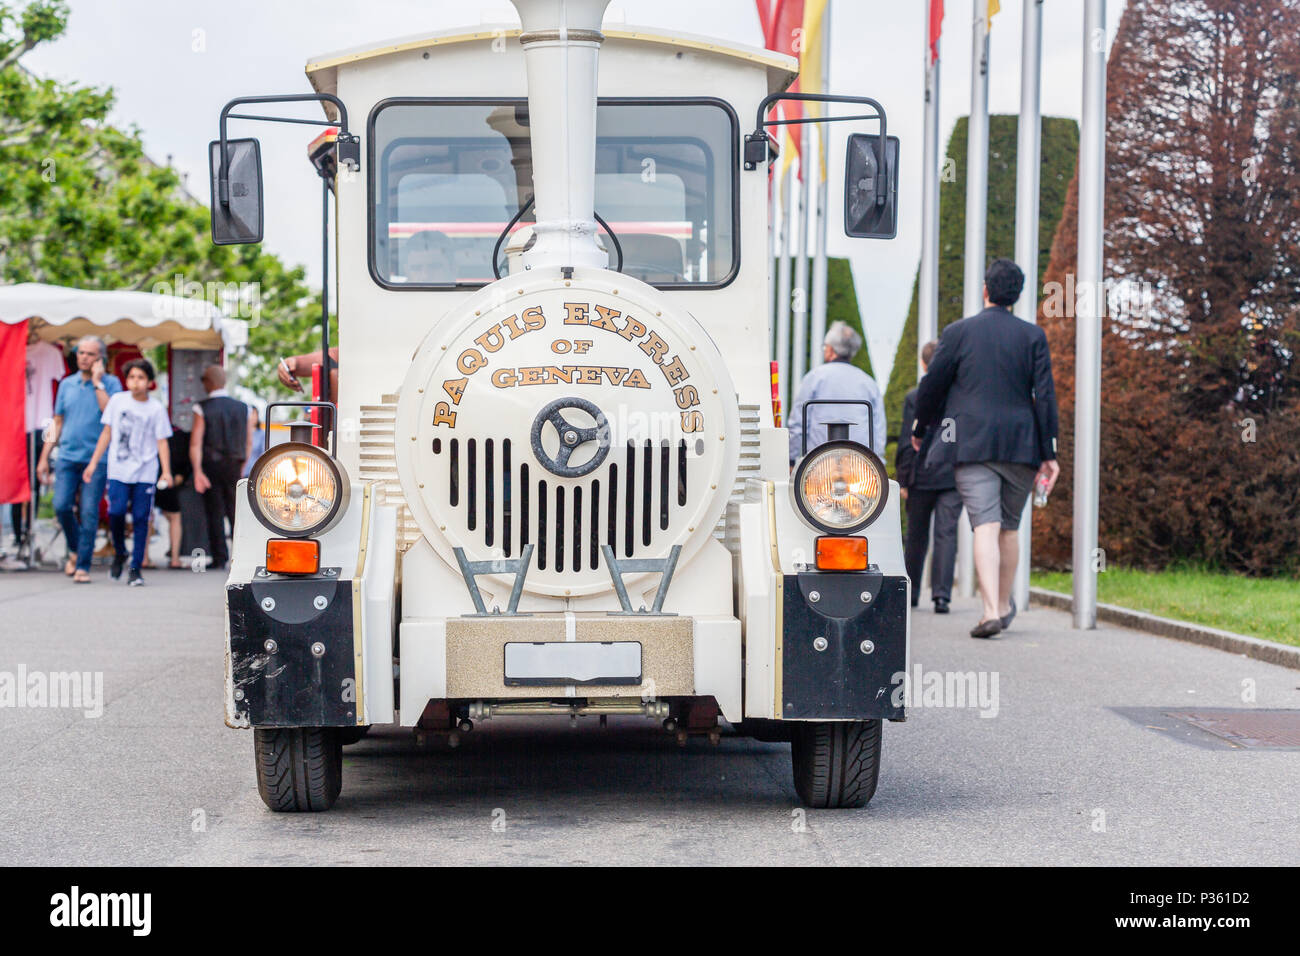 Pâquis express de Genève is a small train which is a means of transport so that tourists can see the edge of Lake Geneva . - Stock Image